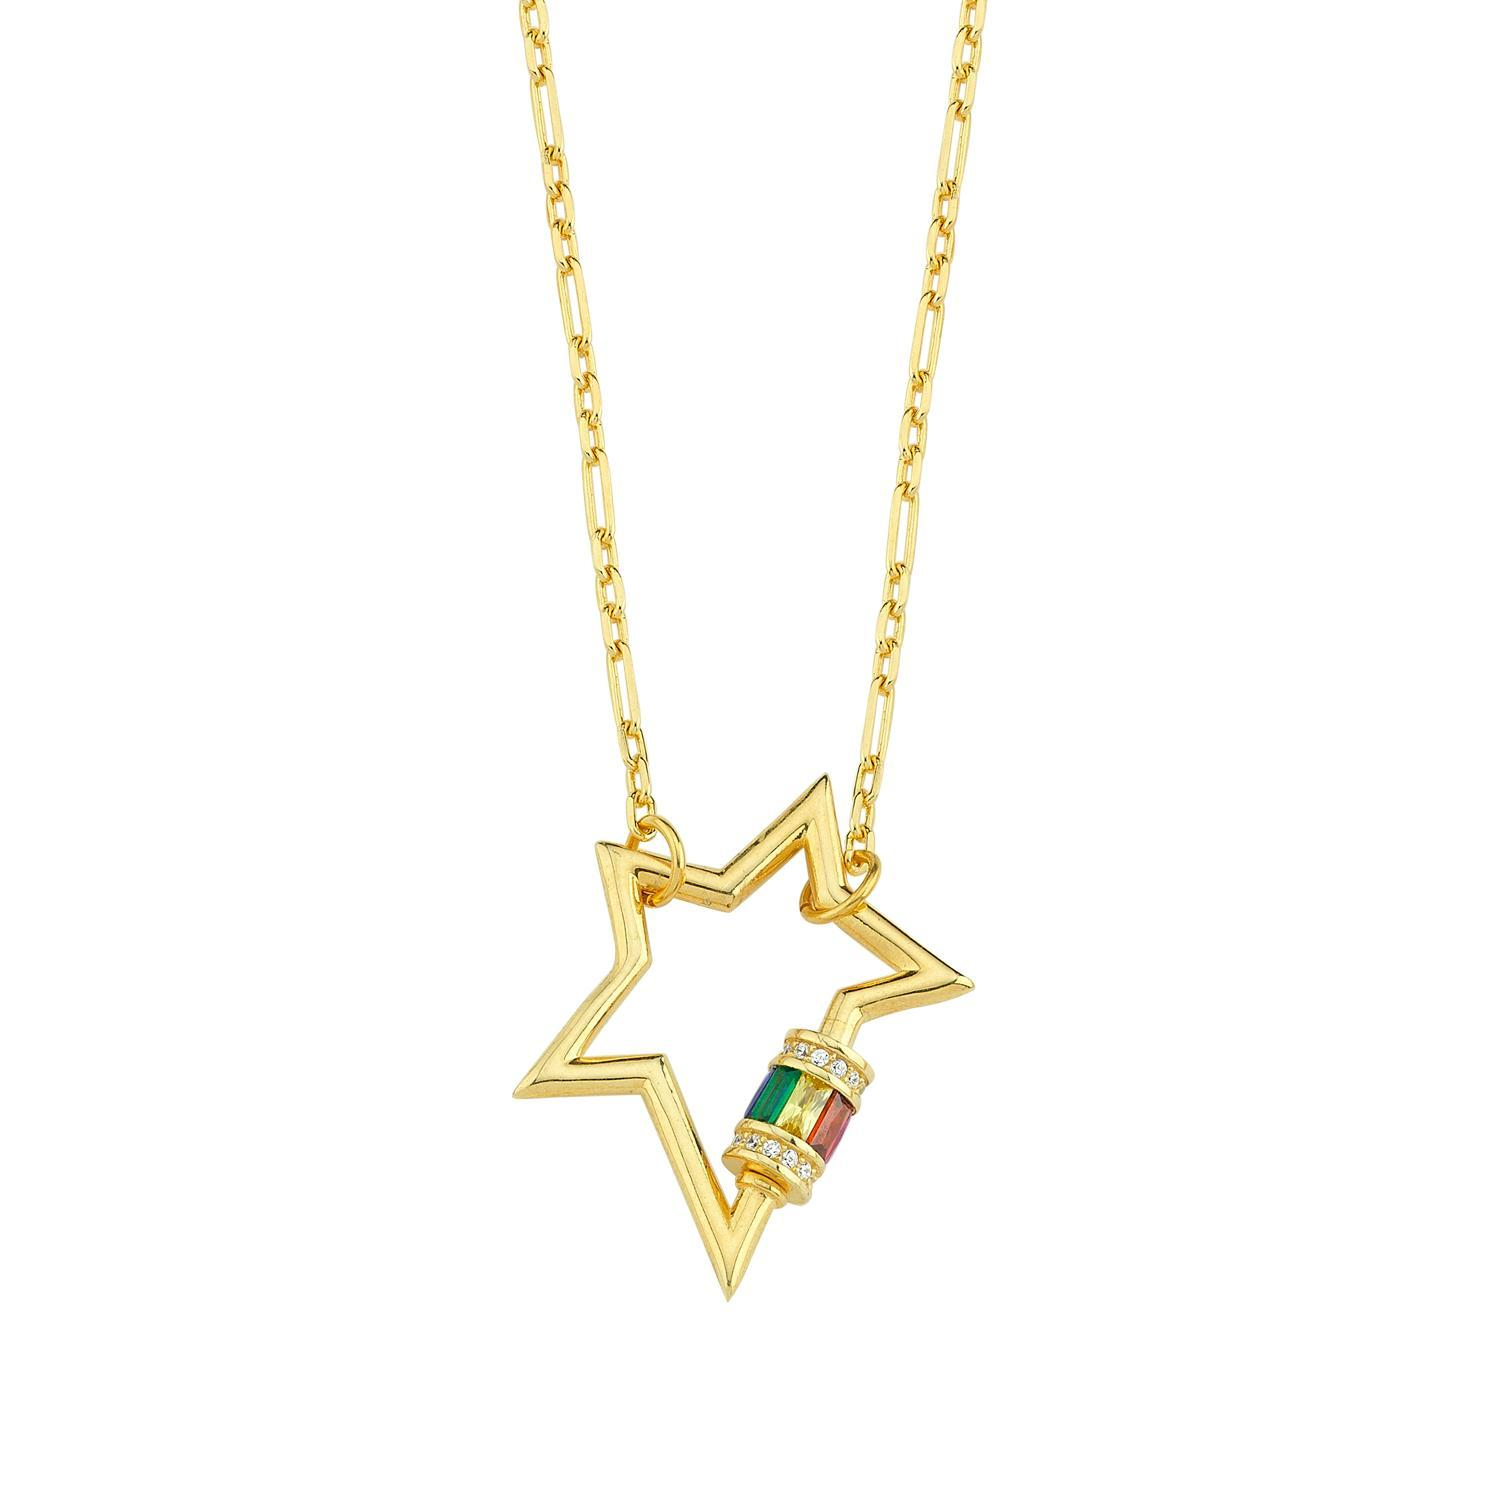 Rainbow Rockstar Necklace